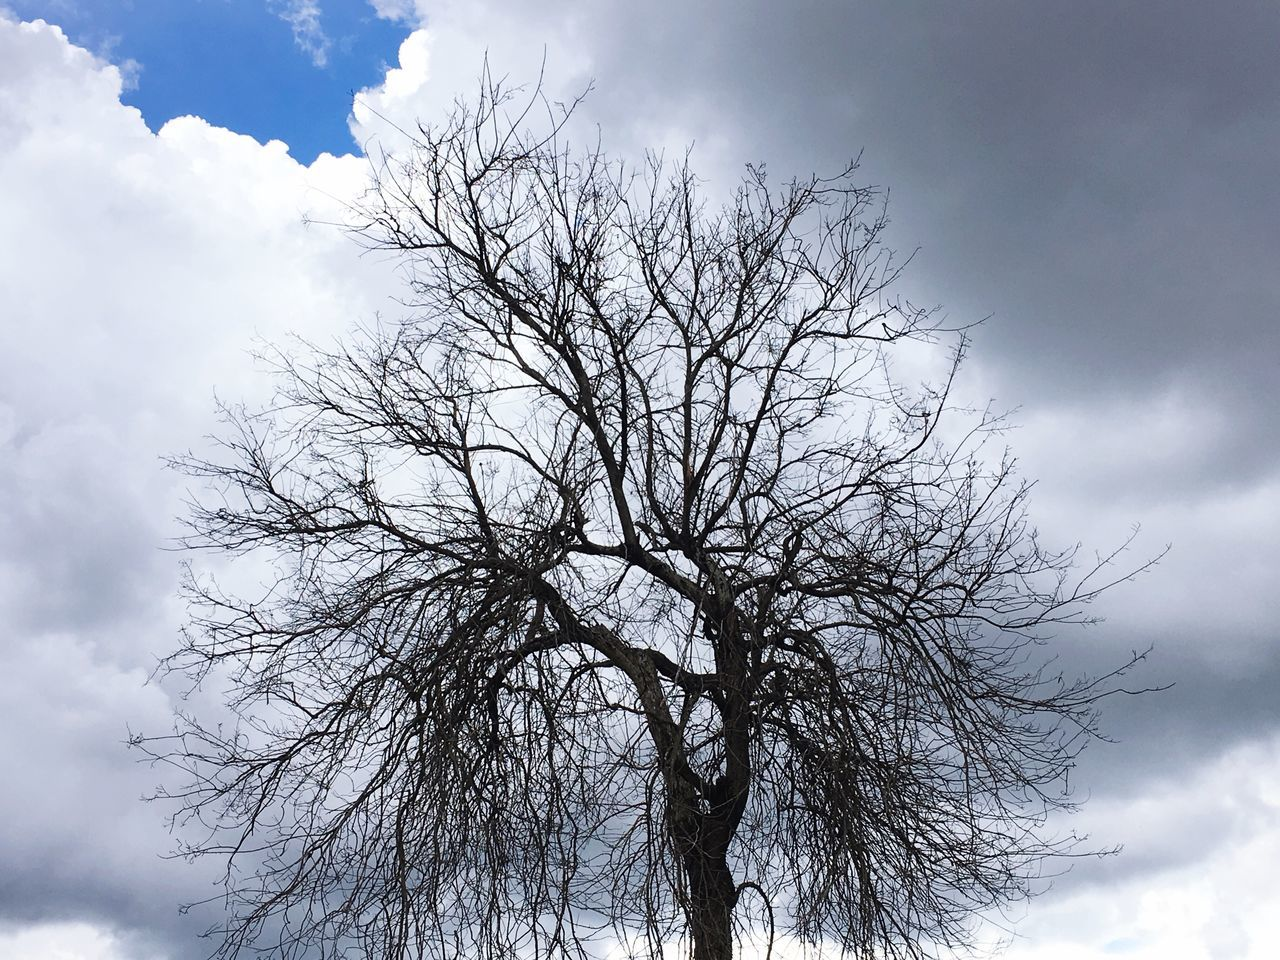 Bare Tree Sky Low Angle View Tree Cloud - Sky Nature Branch No People Outdoors Tranquility Beauty In Nature Day Scenics